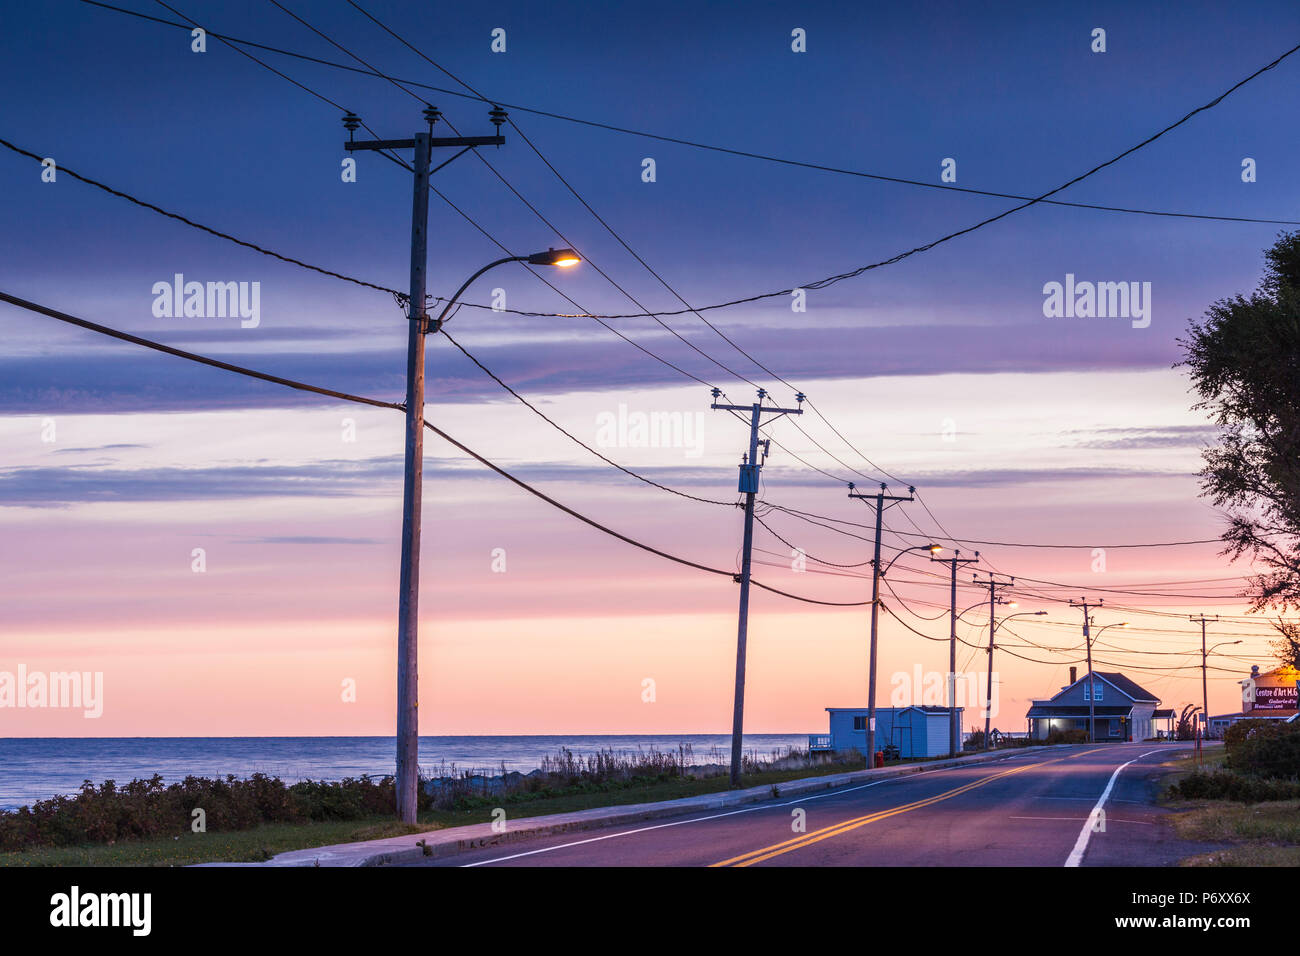 Canada, Quebec, Gaspe Peninsula, Sainte-Flavie, Rt 132 by the St. Lawrence River, dawn - Stock Image